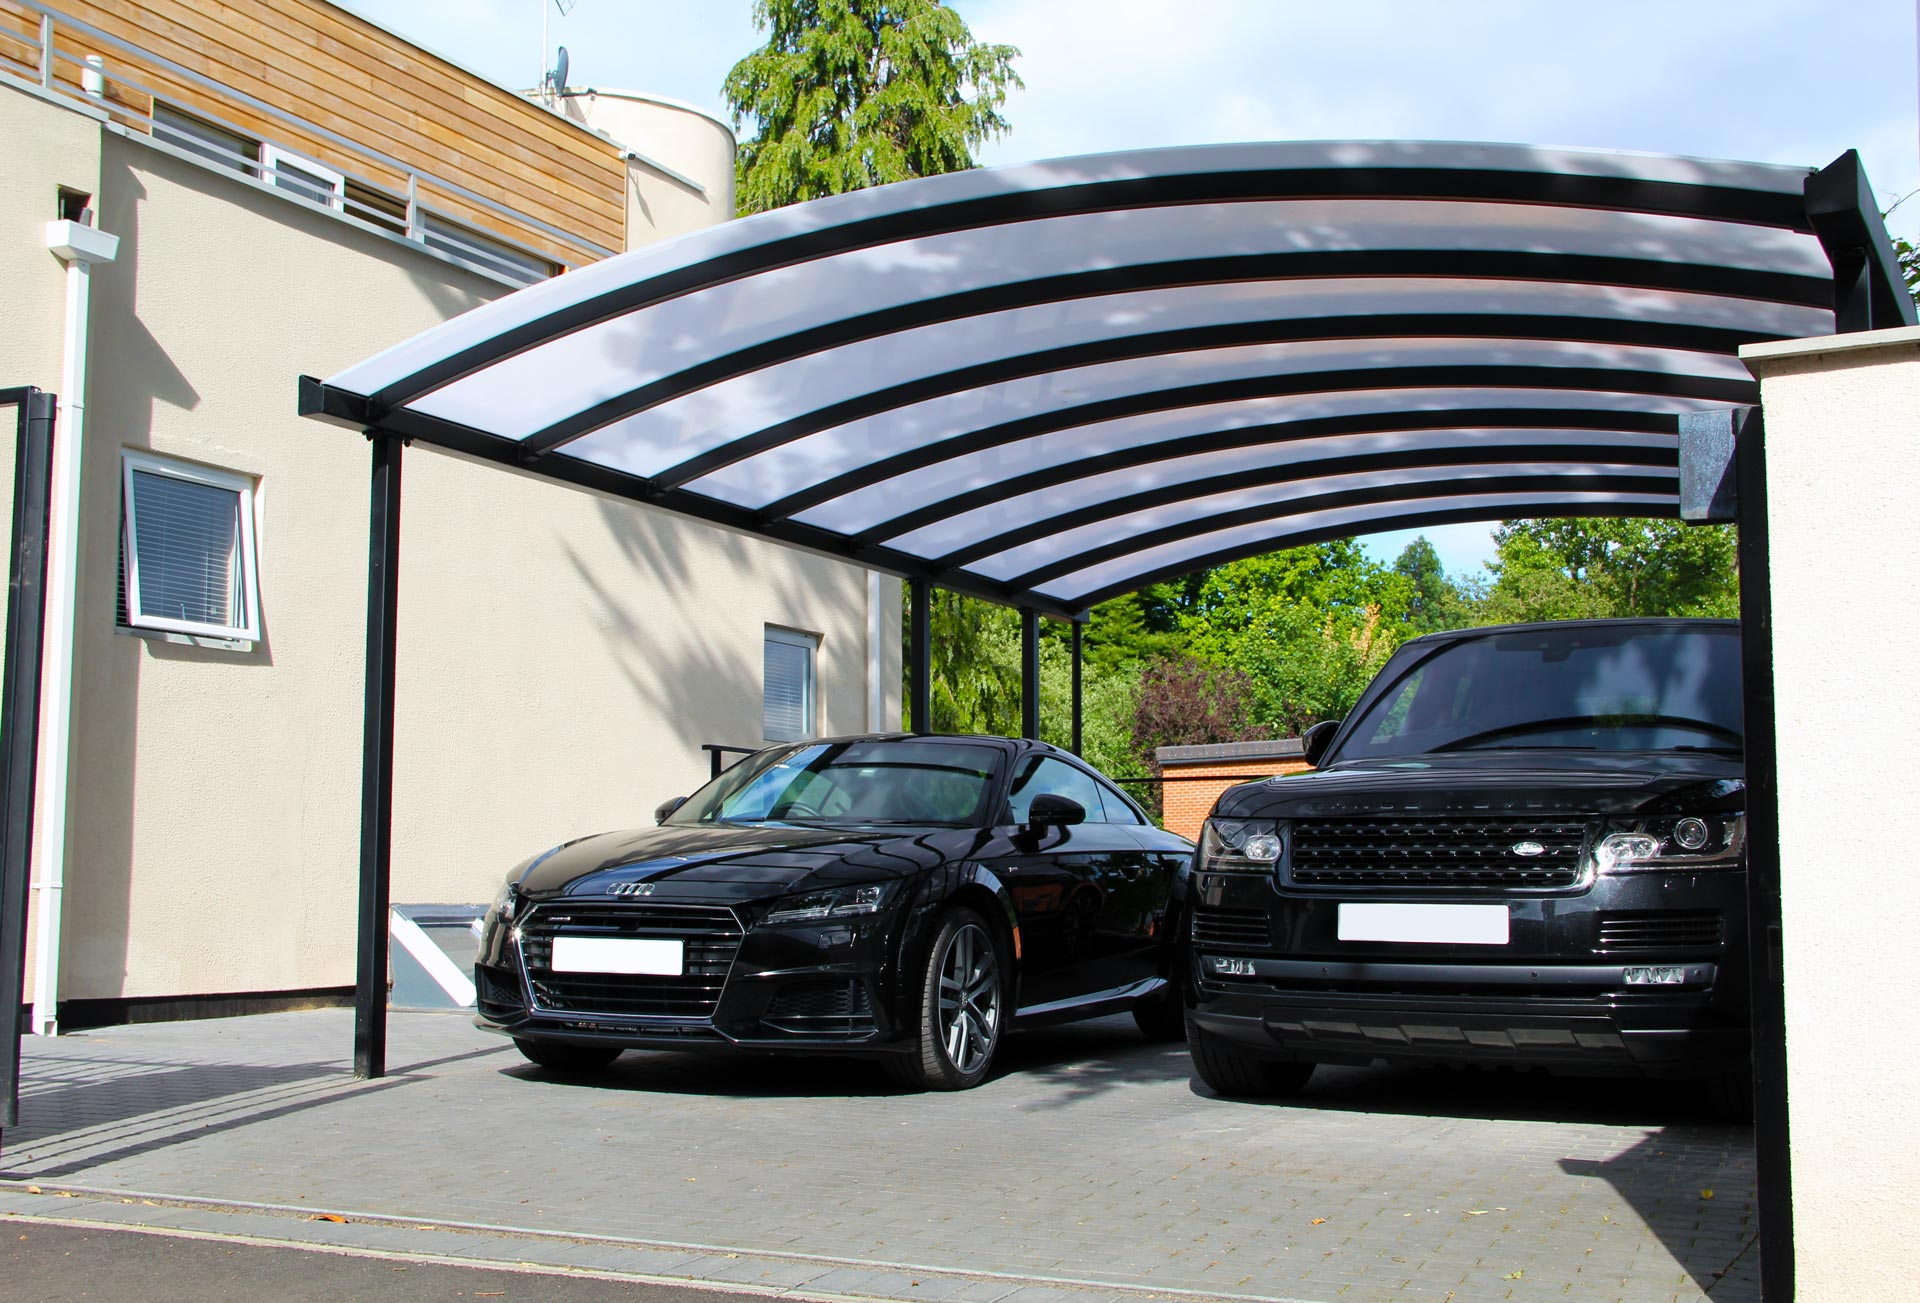 Awnings For Cars : Car port canopy for cars kappion carports canopies